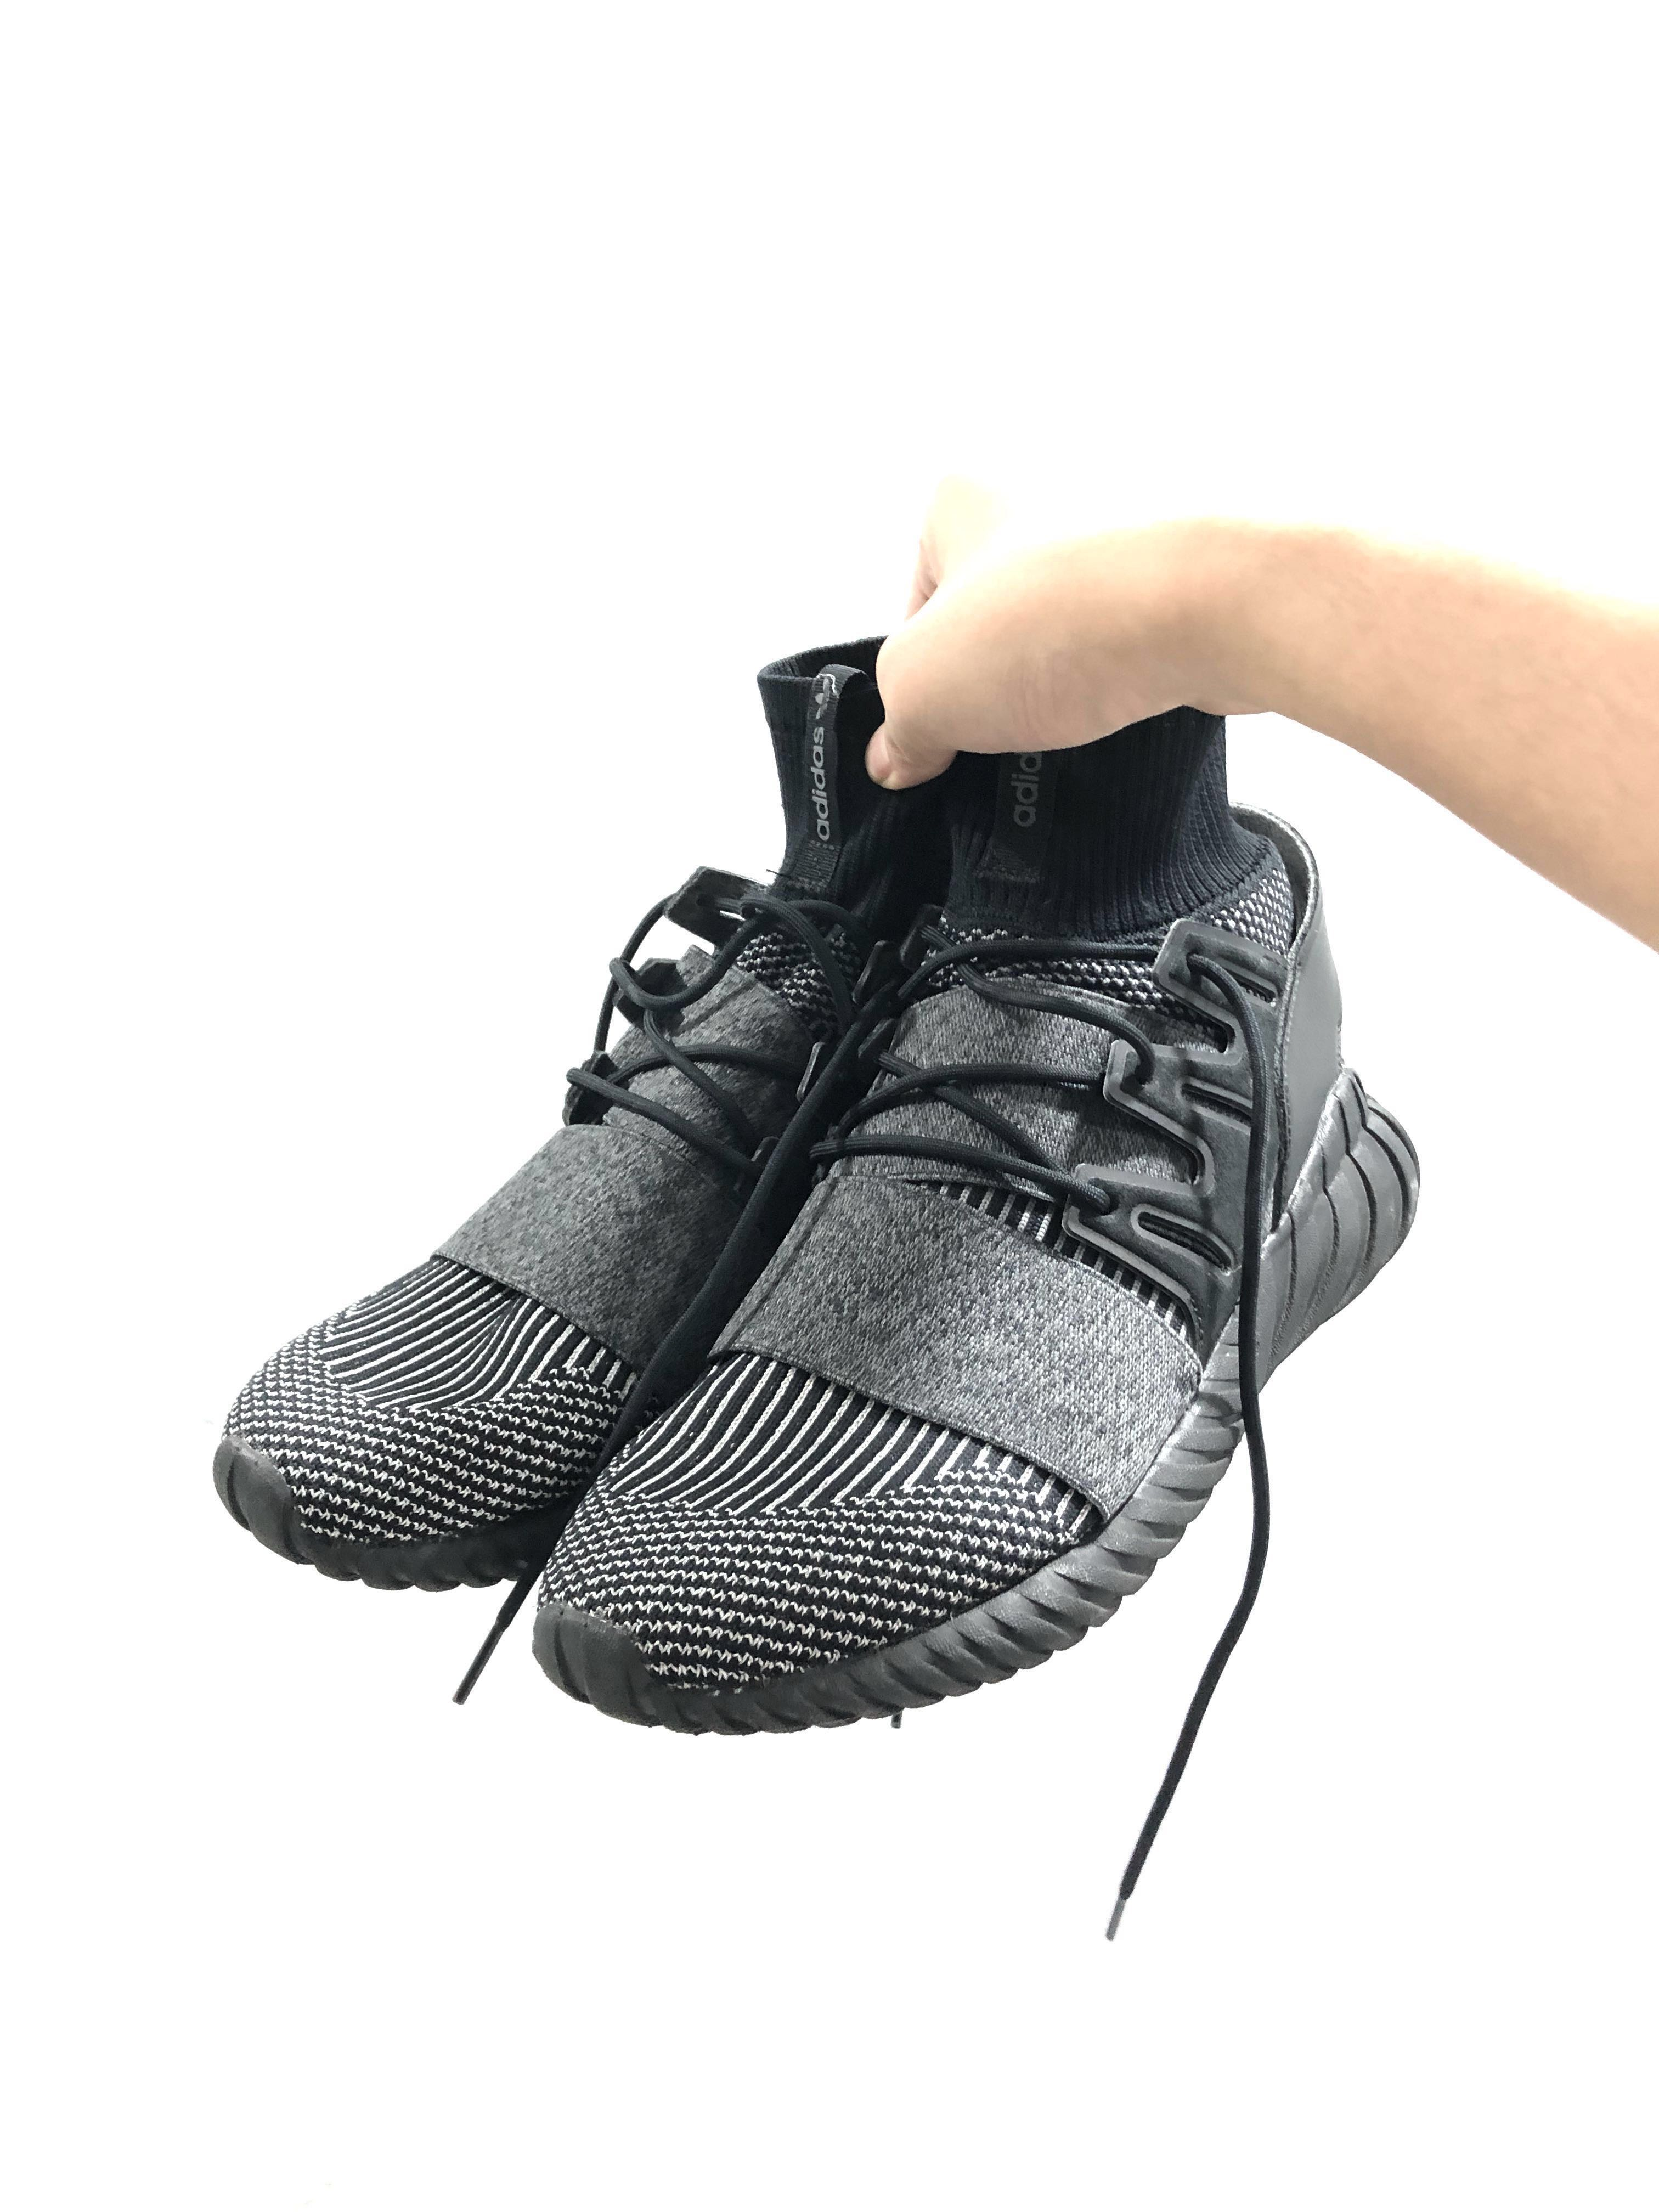 6ec54a75c2c5 Adidas Tubular Doom Triple PK Black